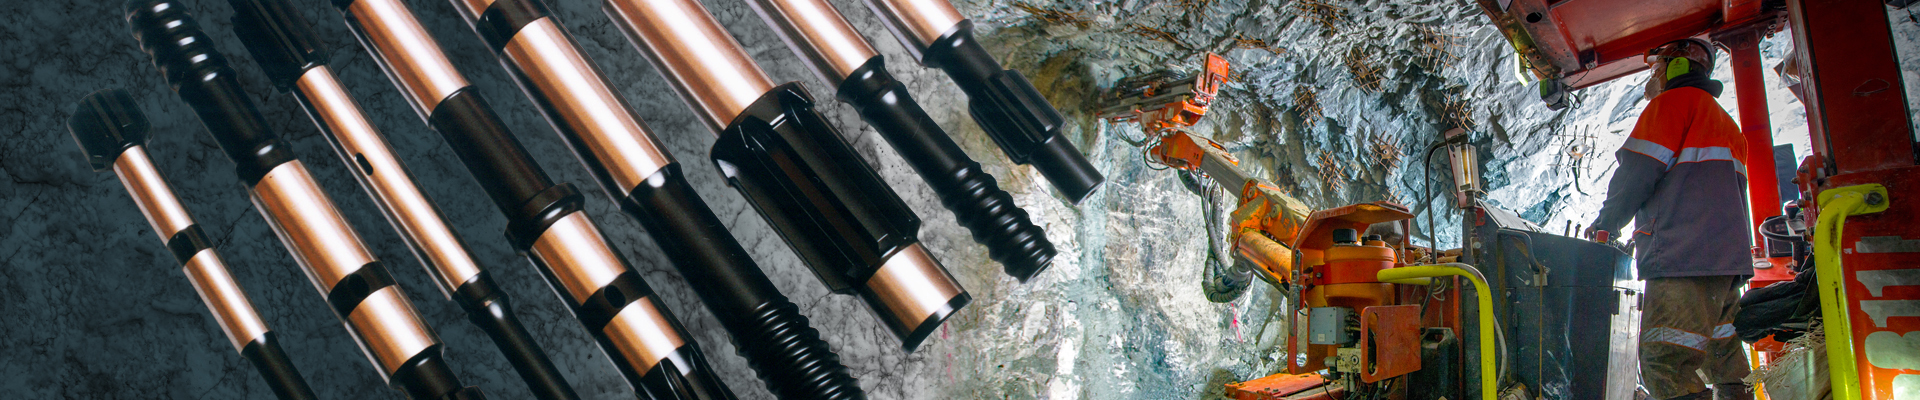 Rockmore Shank Adapters